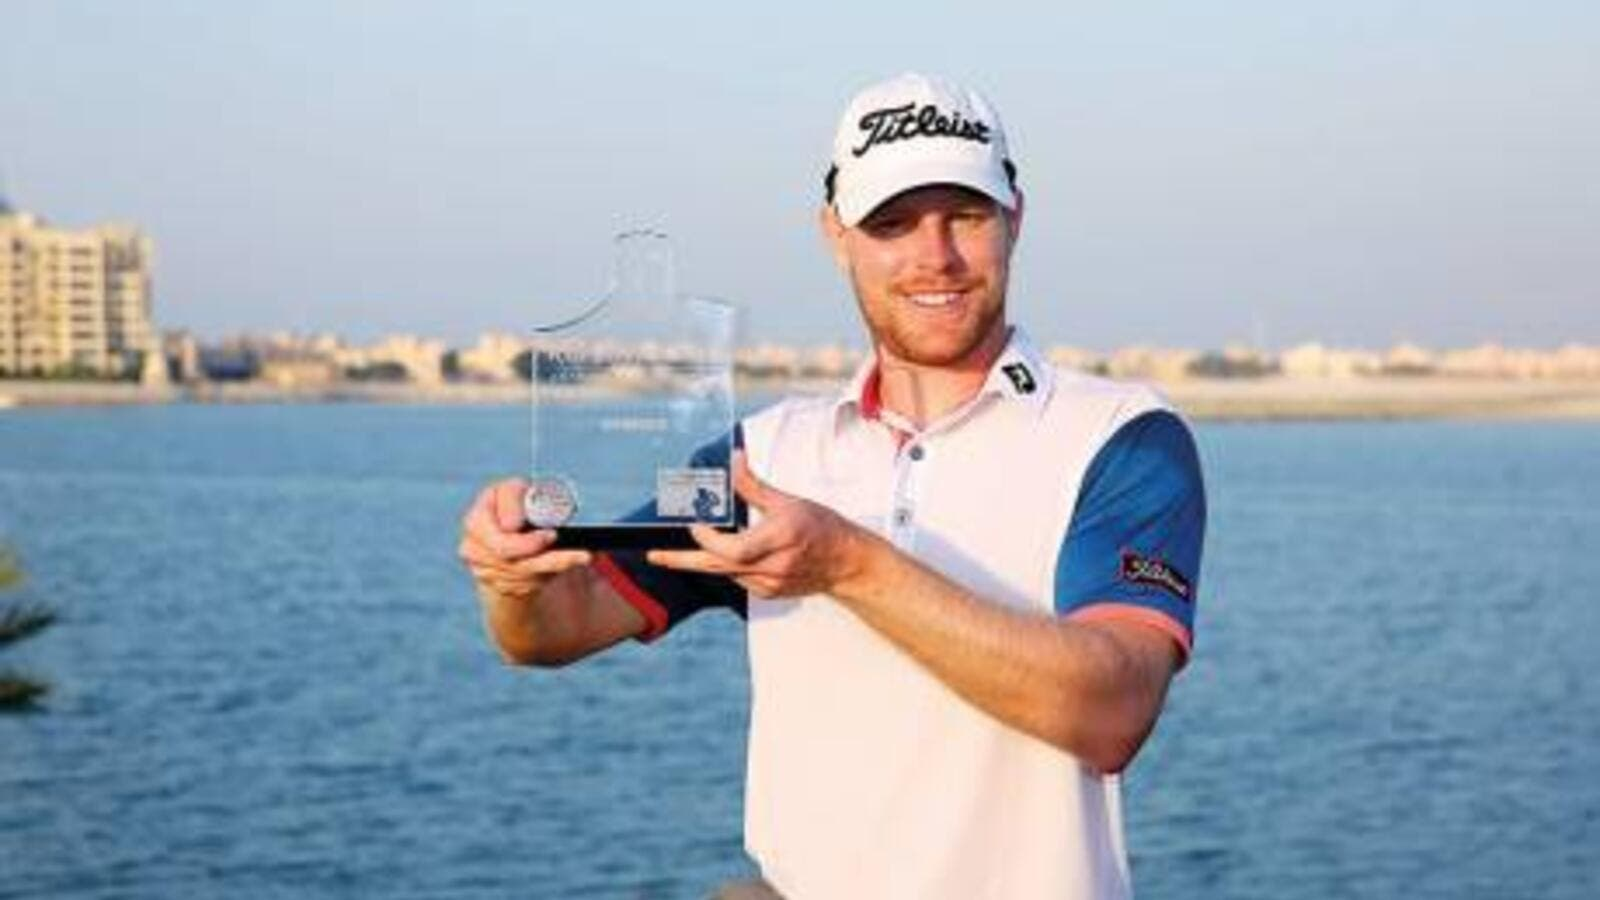 Jens Dantorp with the trophy after winning the Ras Al Khaimah 2017 Golf Challenge. (Photo: Organizer)